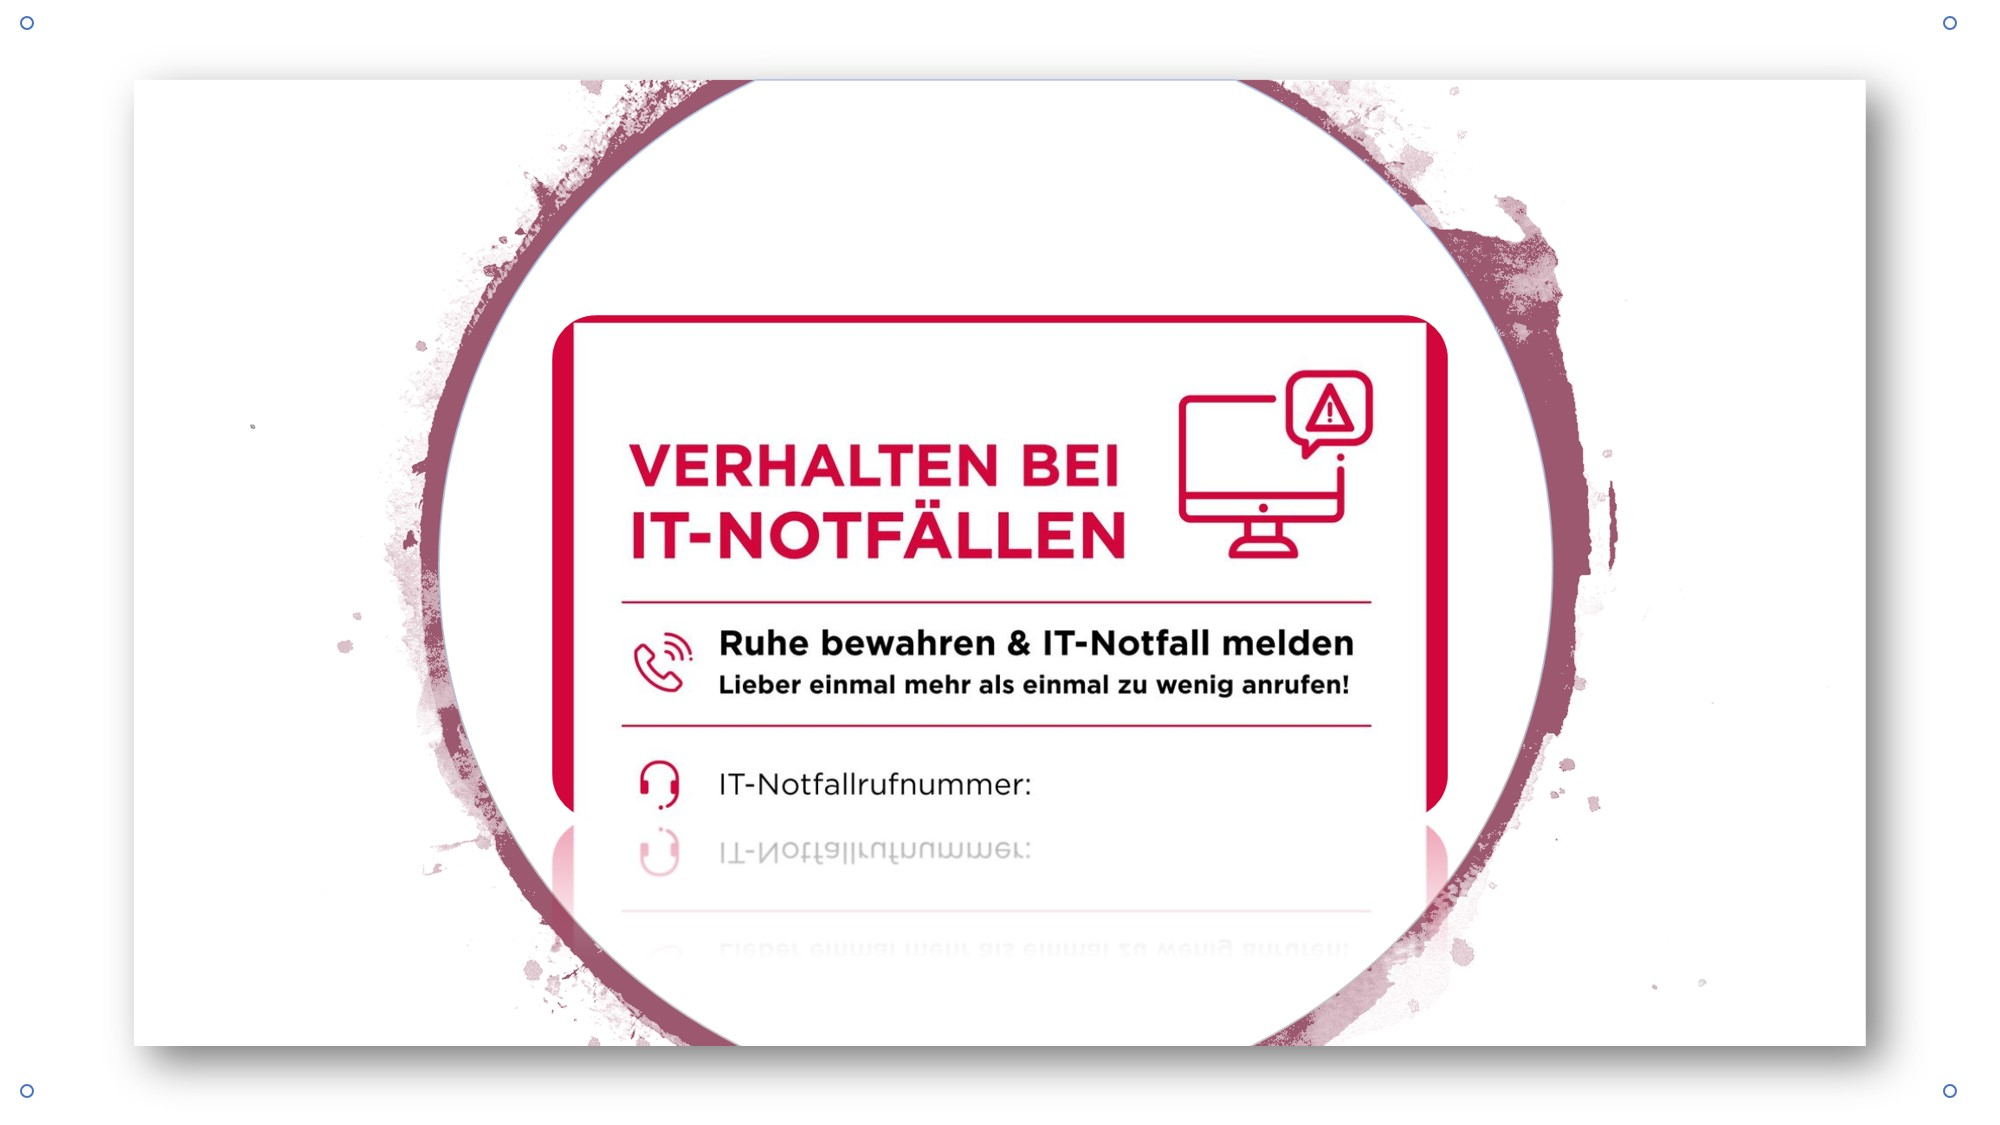 IT-Basissicherheit_IT-Notfallplan